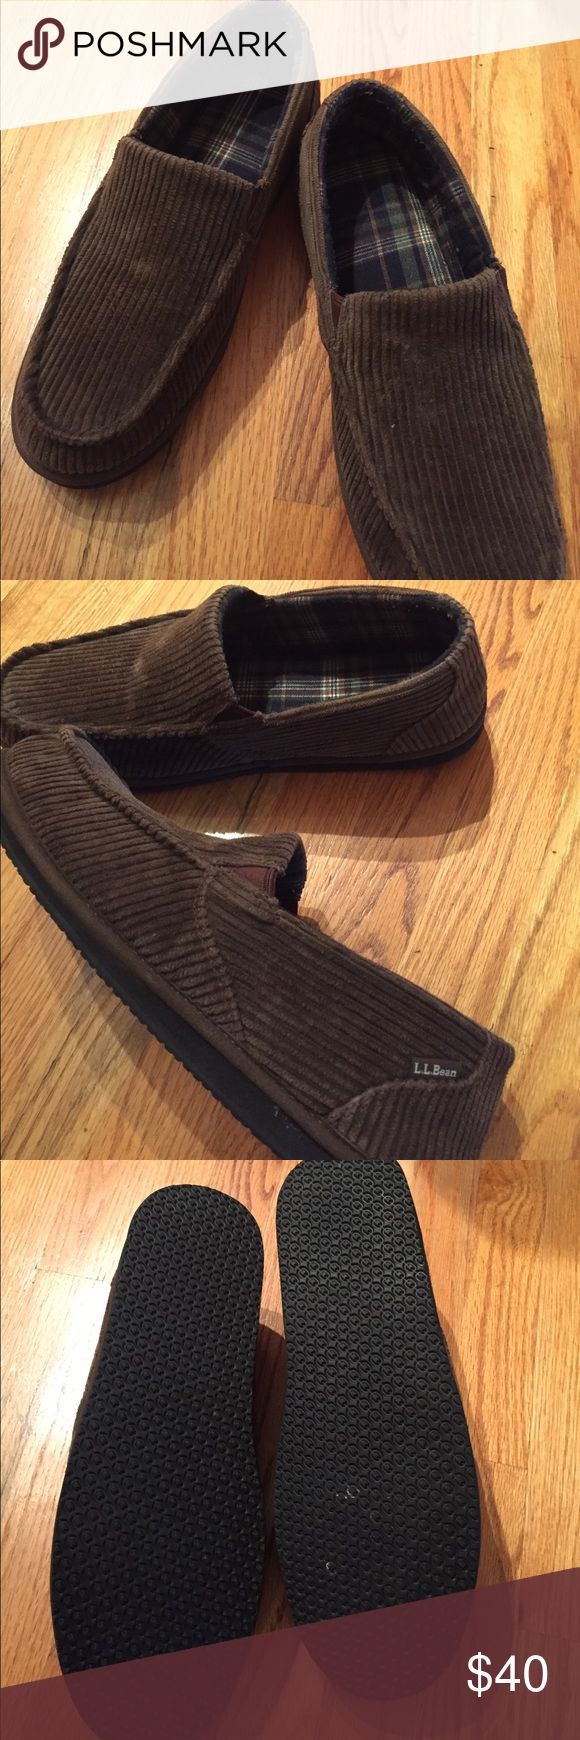 Men's House slippers! Men's brown corduroy, with flannel inside, house slippers! My dad wore these once, inside + changed his mind, lol.. mint condition.. price FIRM! LL Bean Shoes Slippers